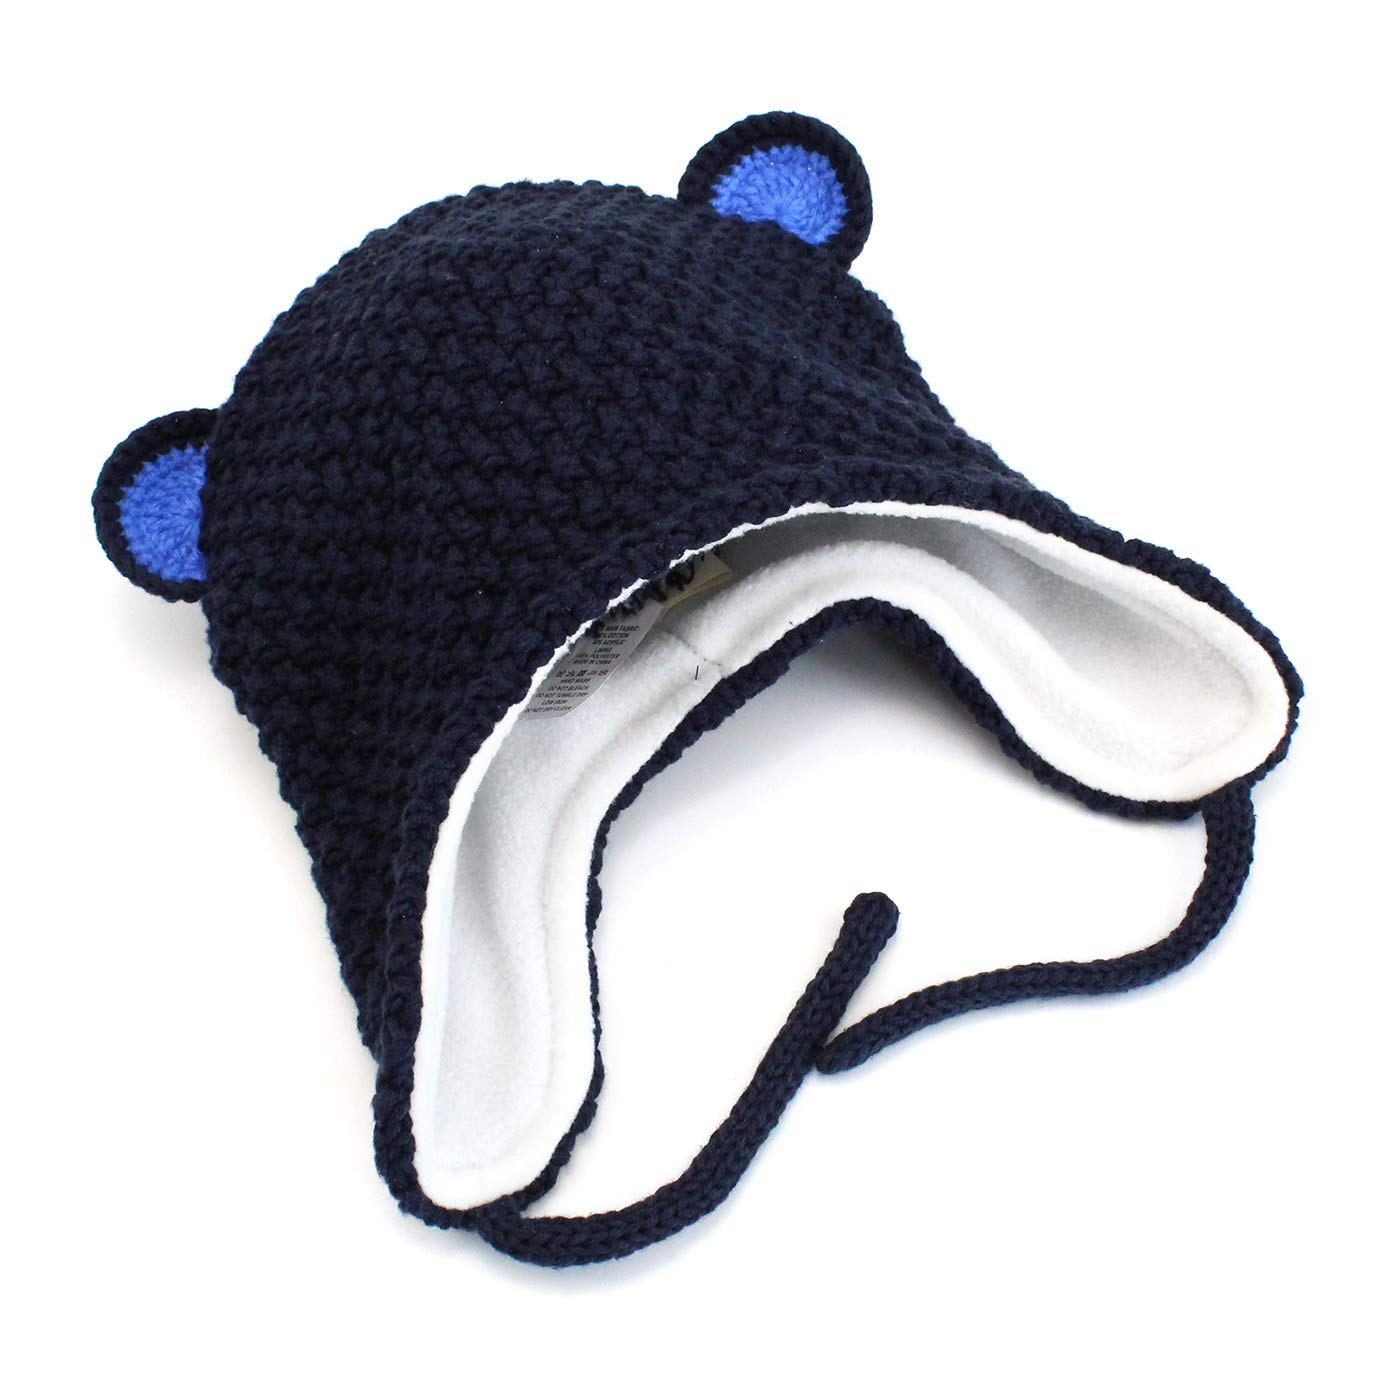 Langzhen Baby Kids Winter Knitted Hat Boy Girl Thick Warm Beanie Cap with Earflap for Autumn Winter